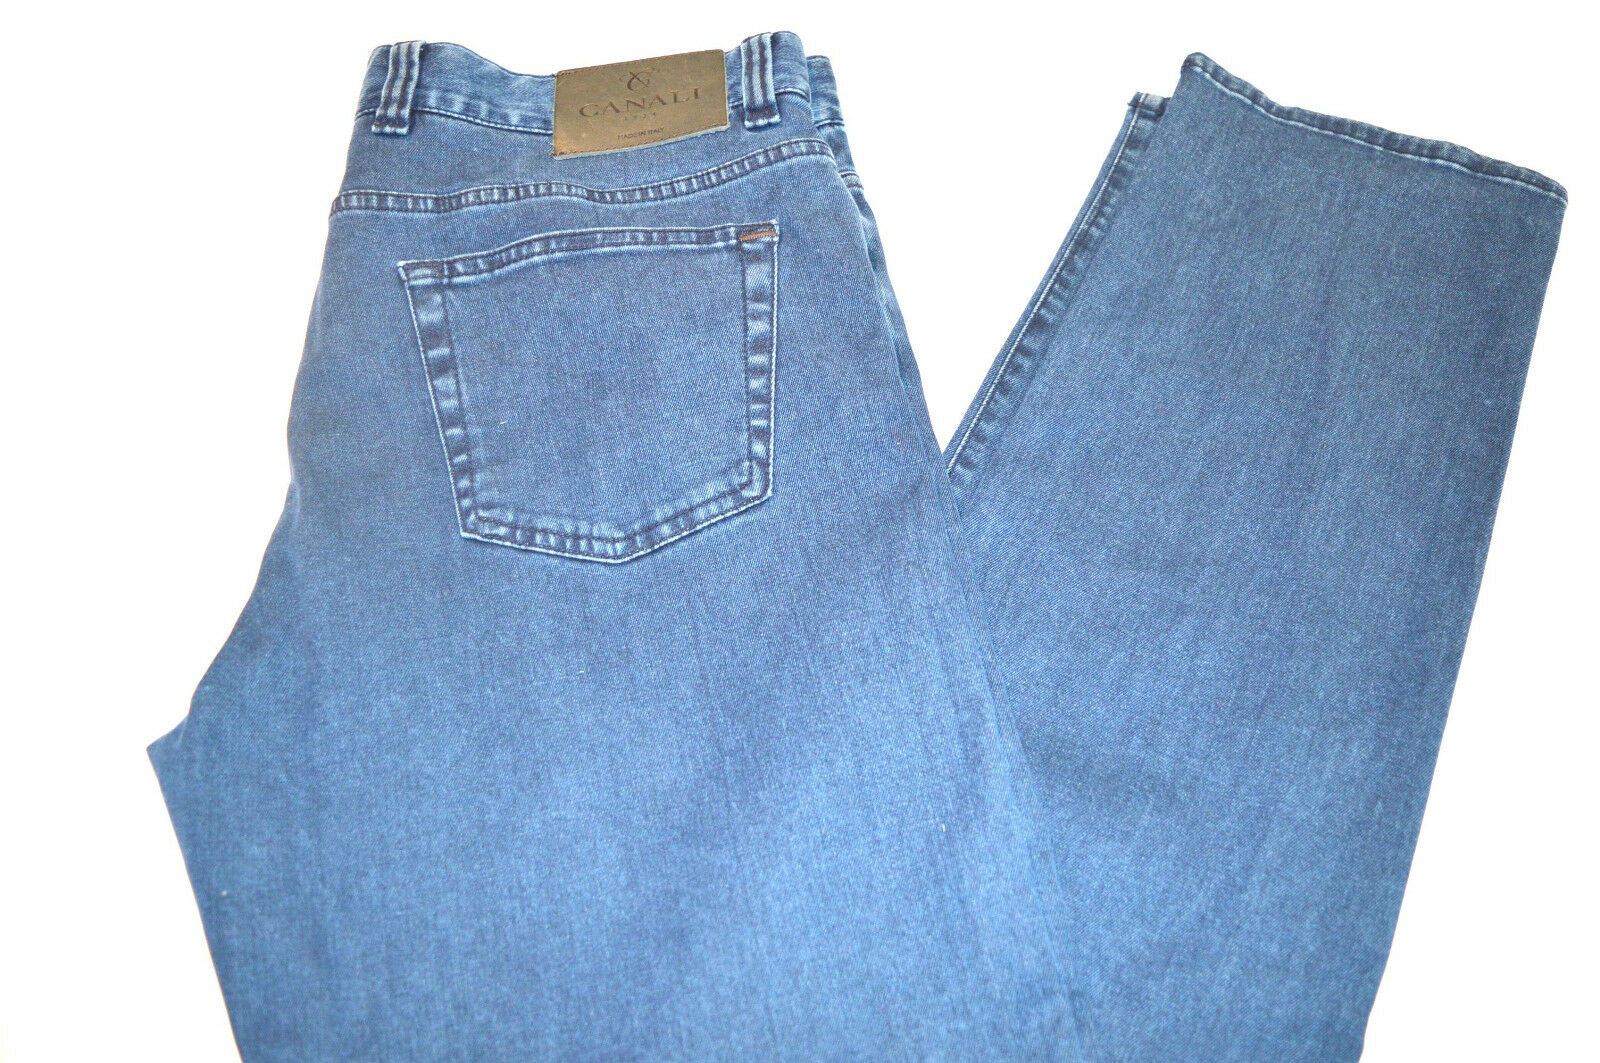 New Canali Cotton Denim bluee Jeans  Size 30 Us 46  Eu  Made in  Cod 3